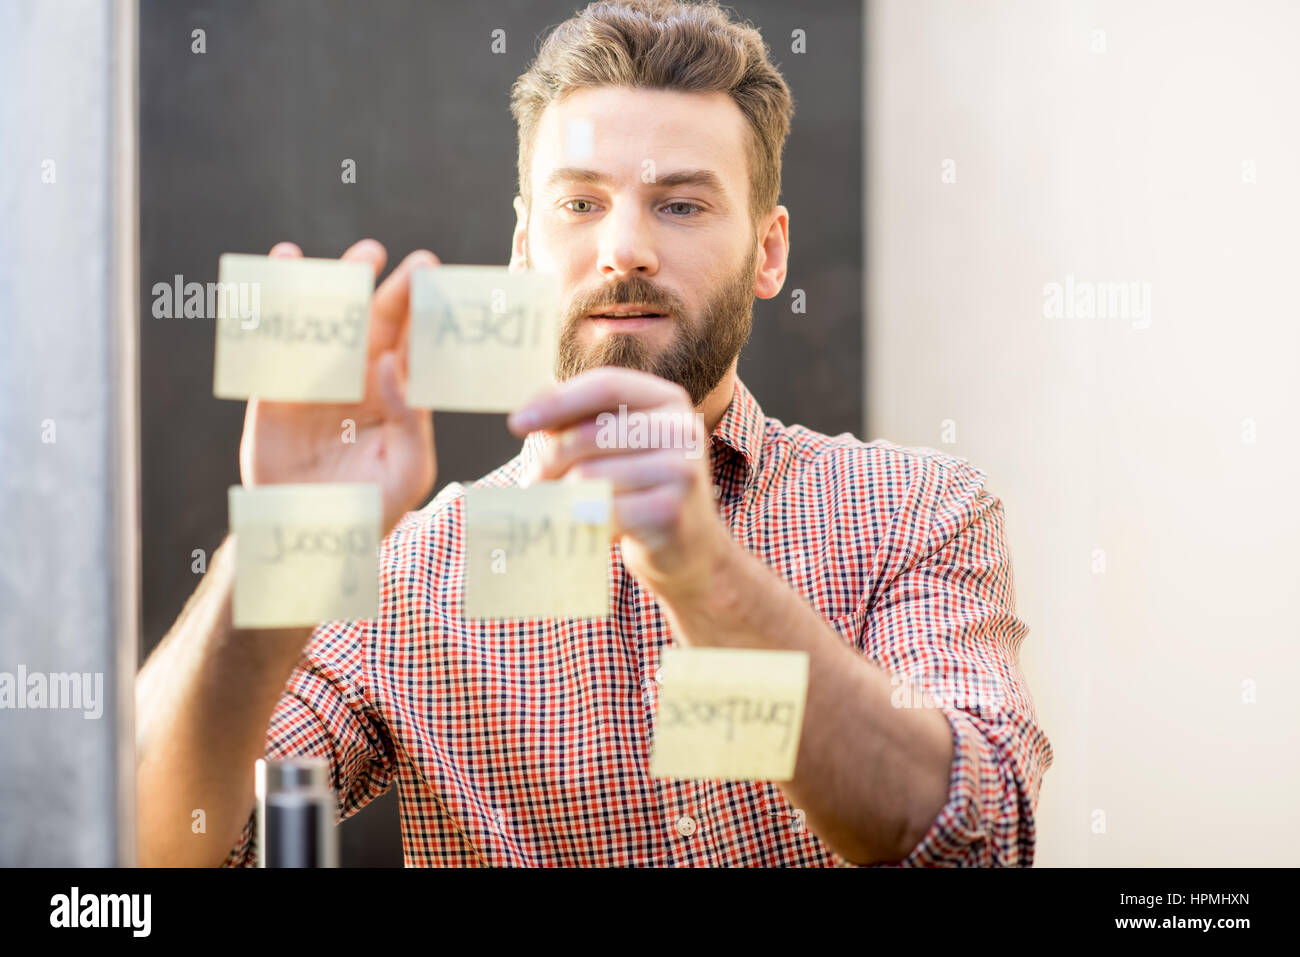 Man working with stickers on the door - Stock Image